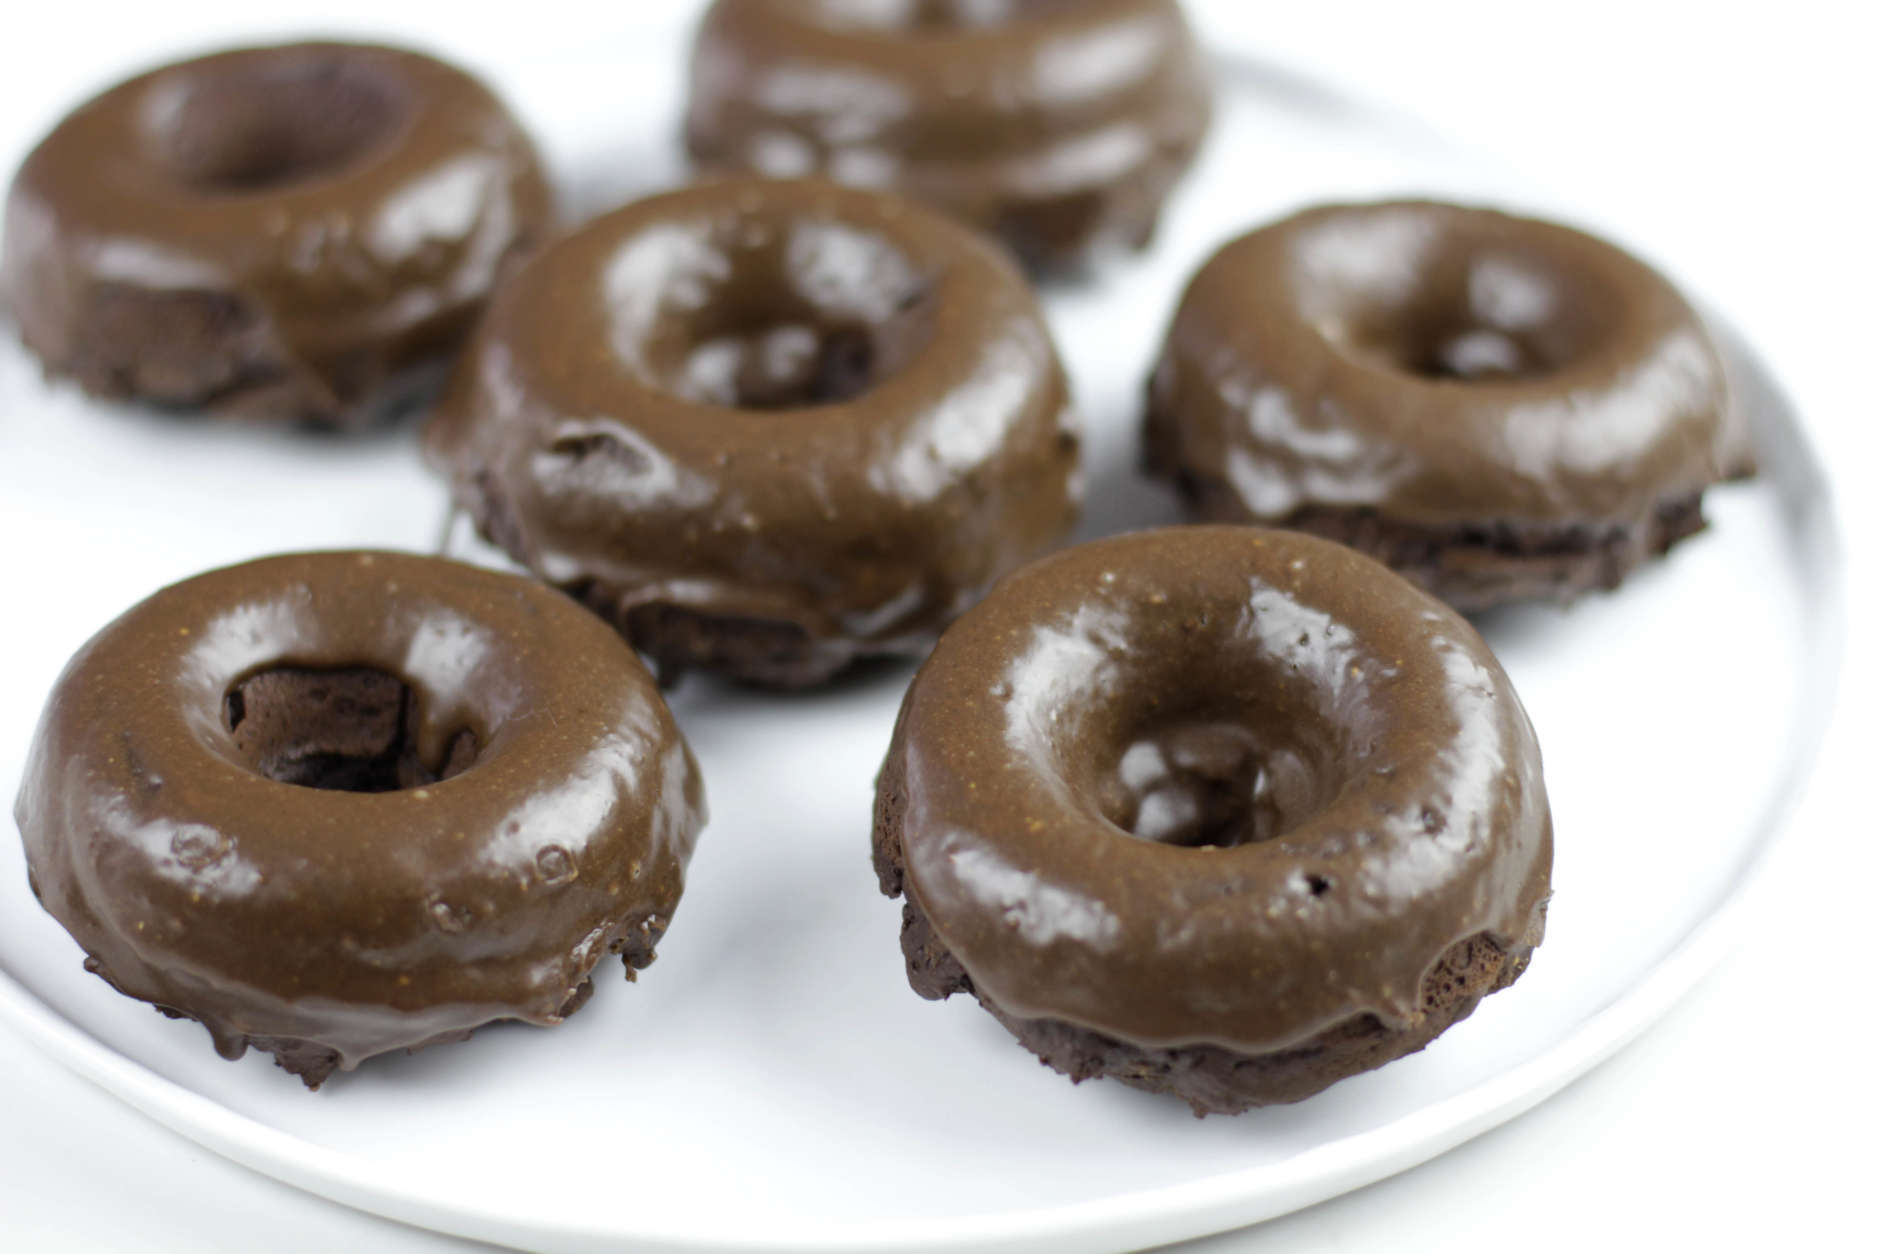 This July 12, 2016 photo shows chocolate peanut butter baked doughnuts in Coronado, Calif. This dish is from a recipe by Melissa d'Arabian. (Melissa d'Arabian via AP)